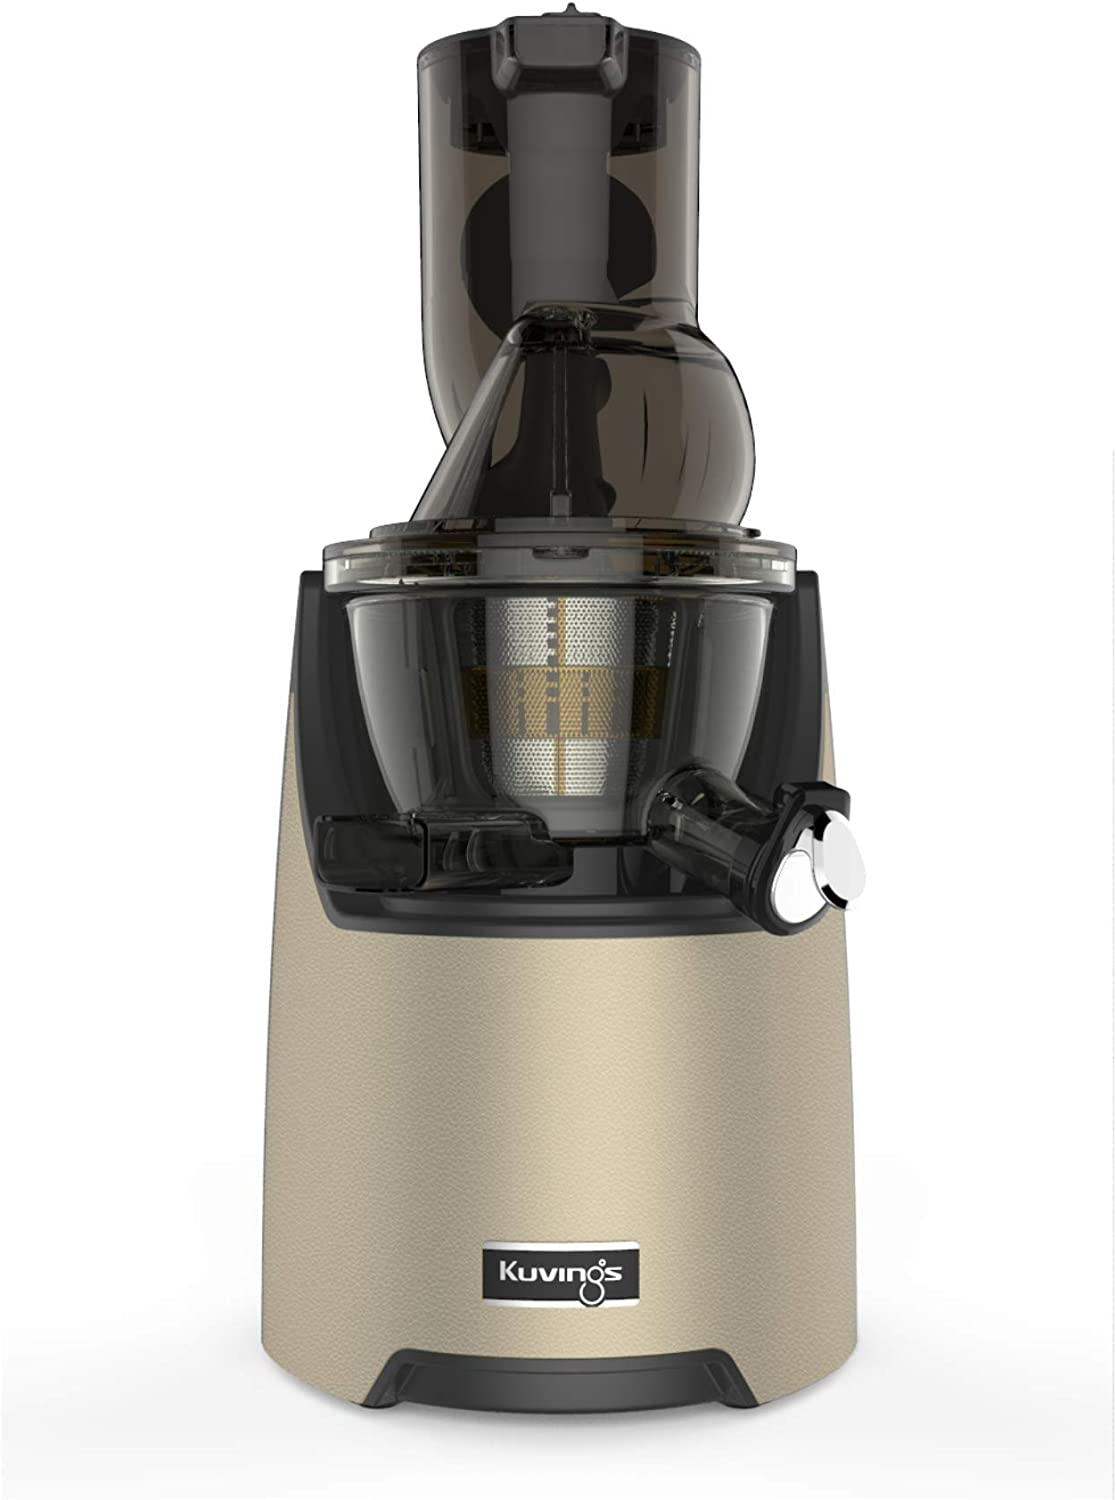 71RUVHcvv L. AC SL1500 The Best Kuvings Juicers to Buy 2021 [Reviewed & Compared]